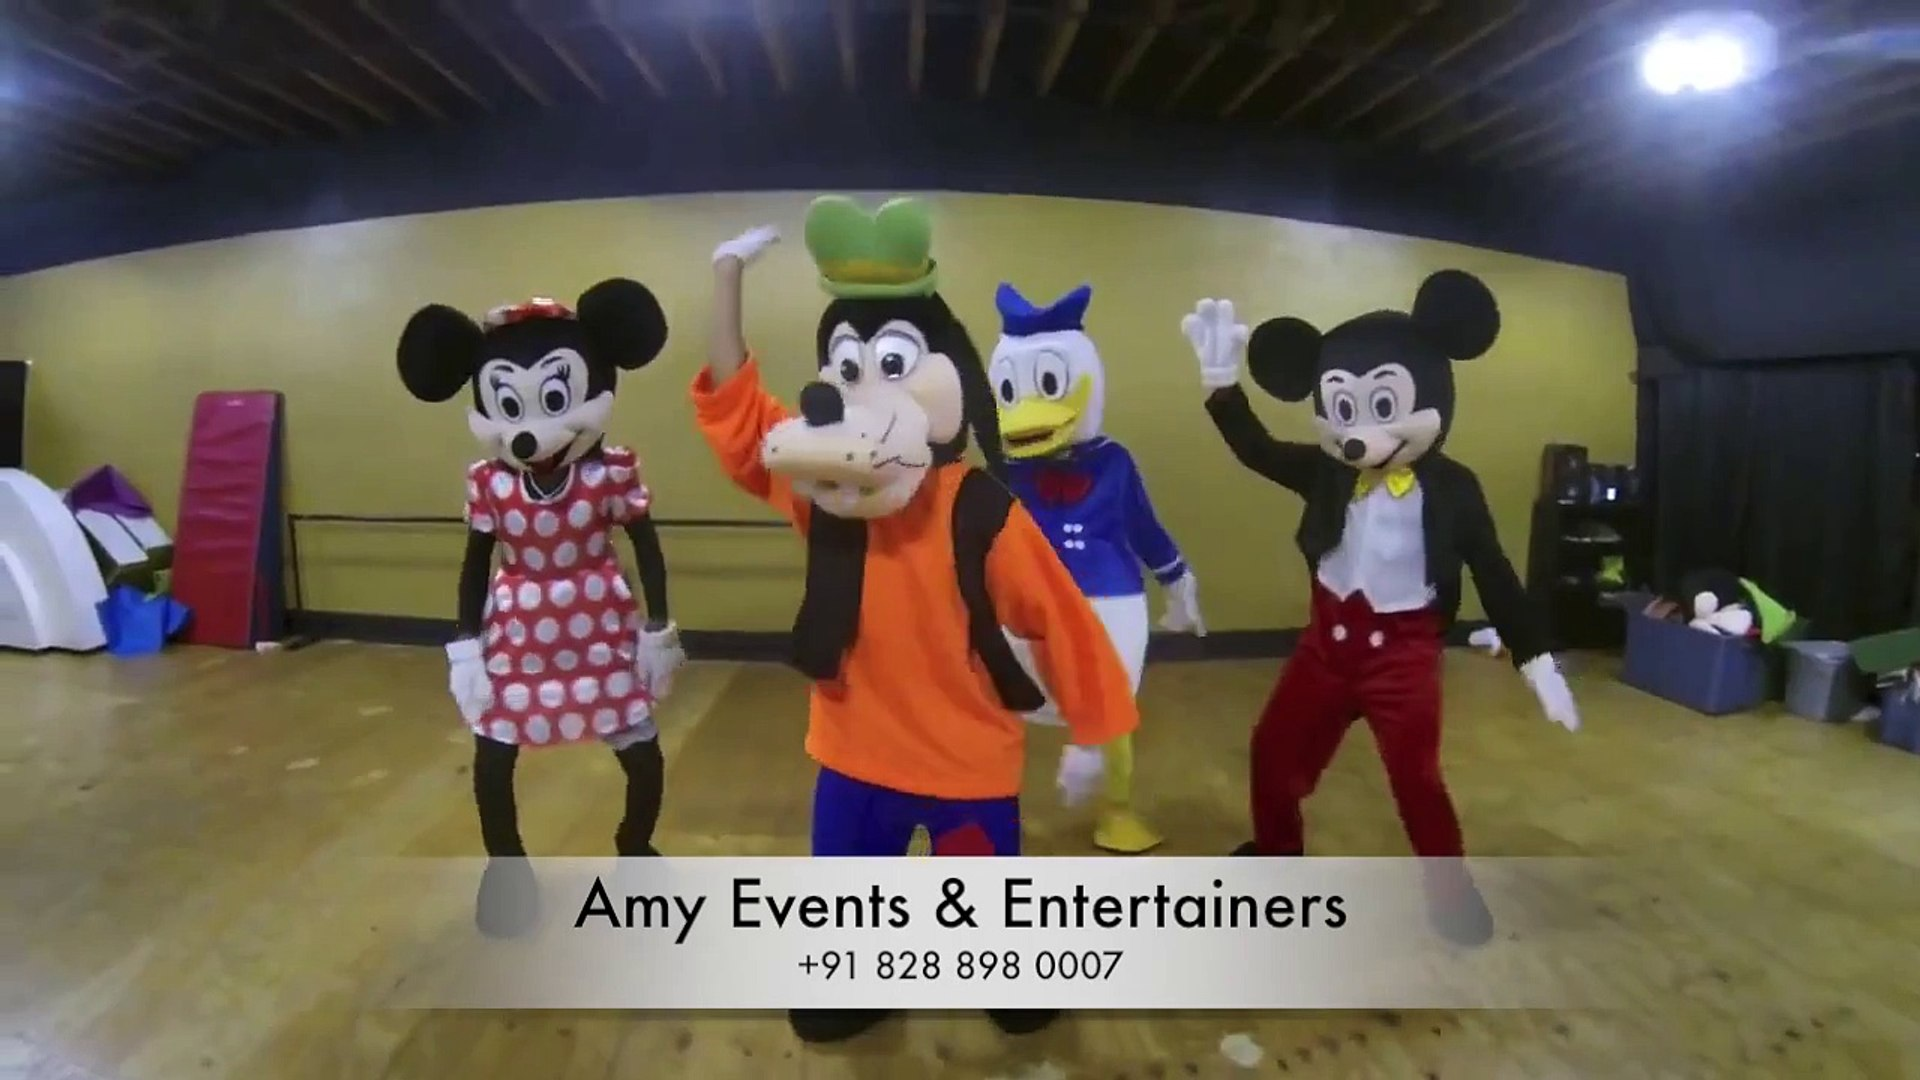 cartoon characters for fun activity  birthday event kids party on rent - Amy Events & Entertaine